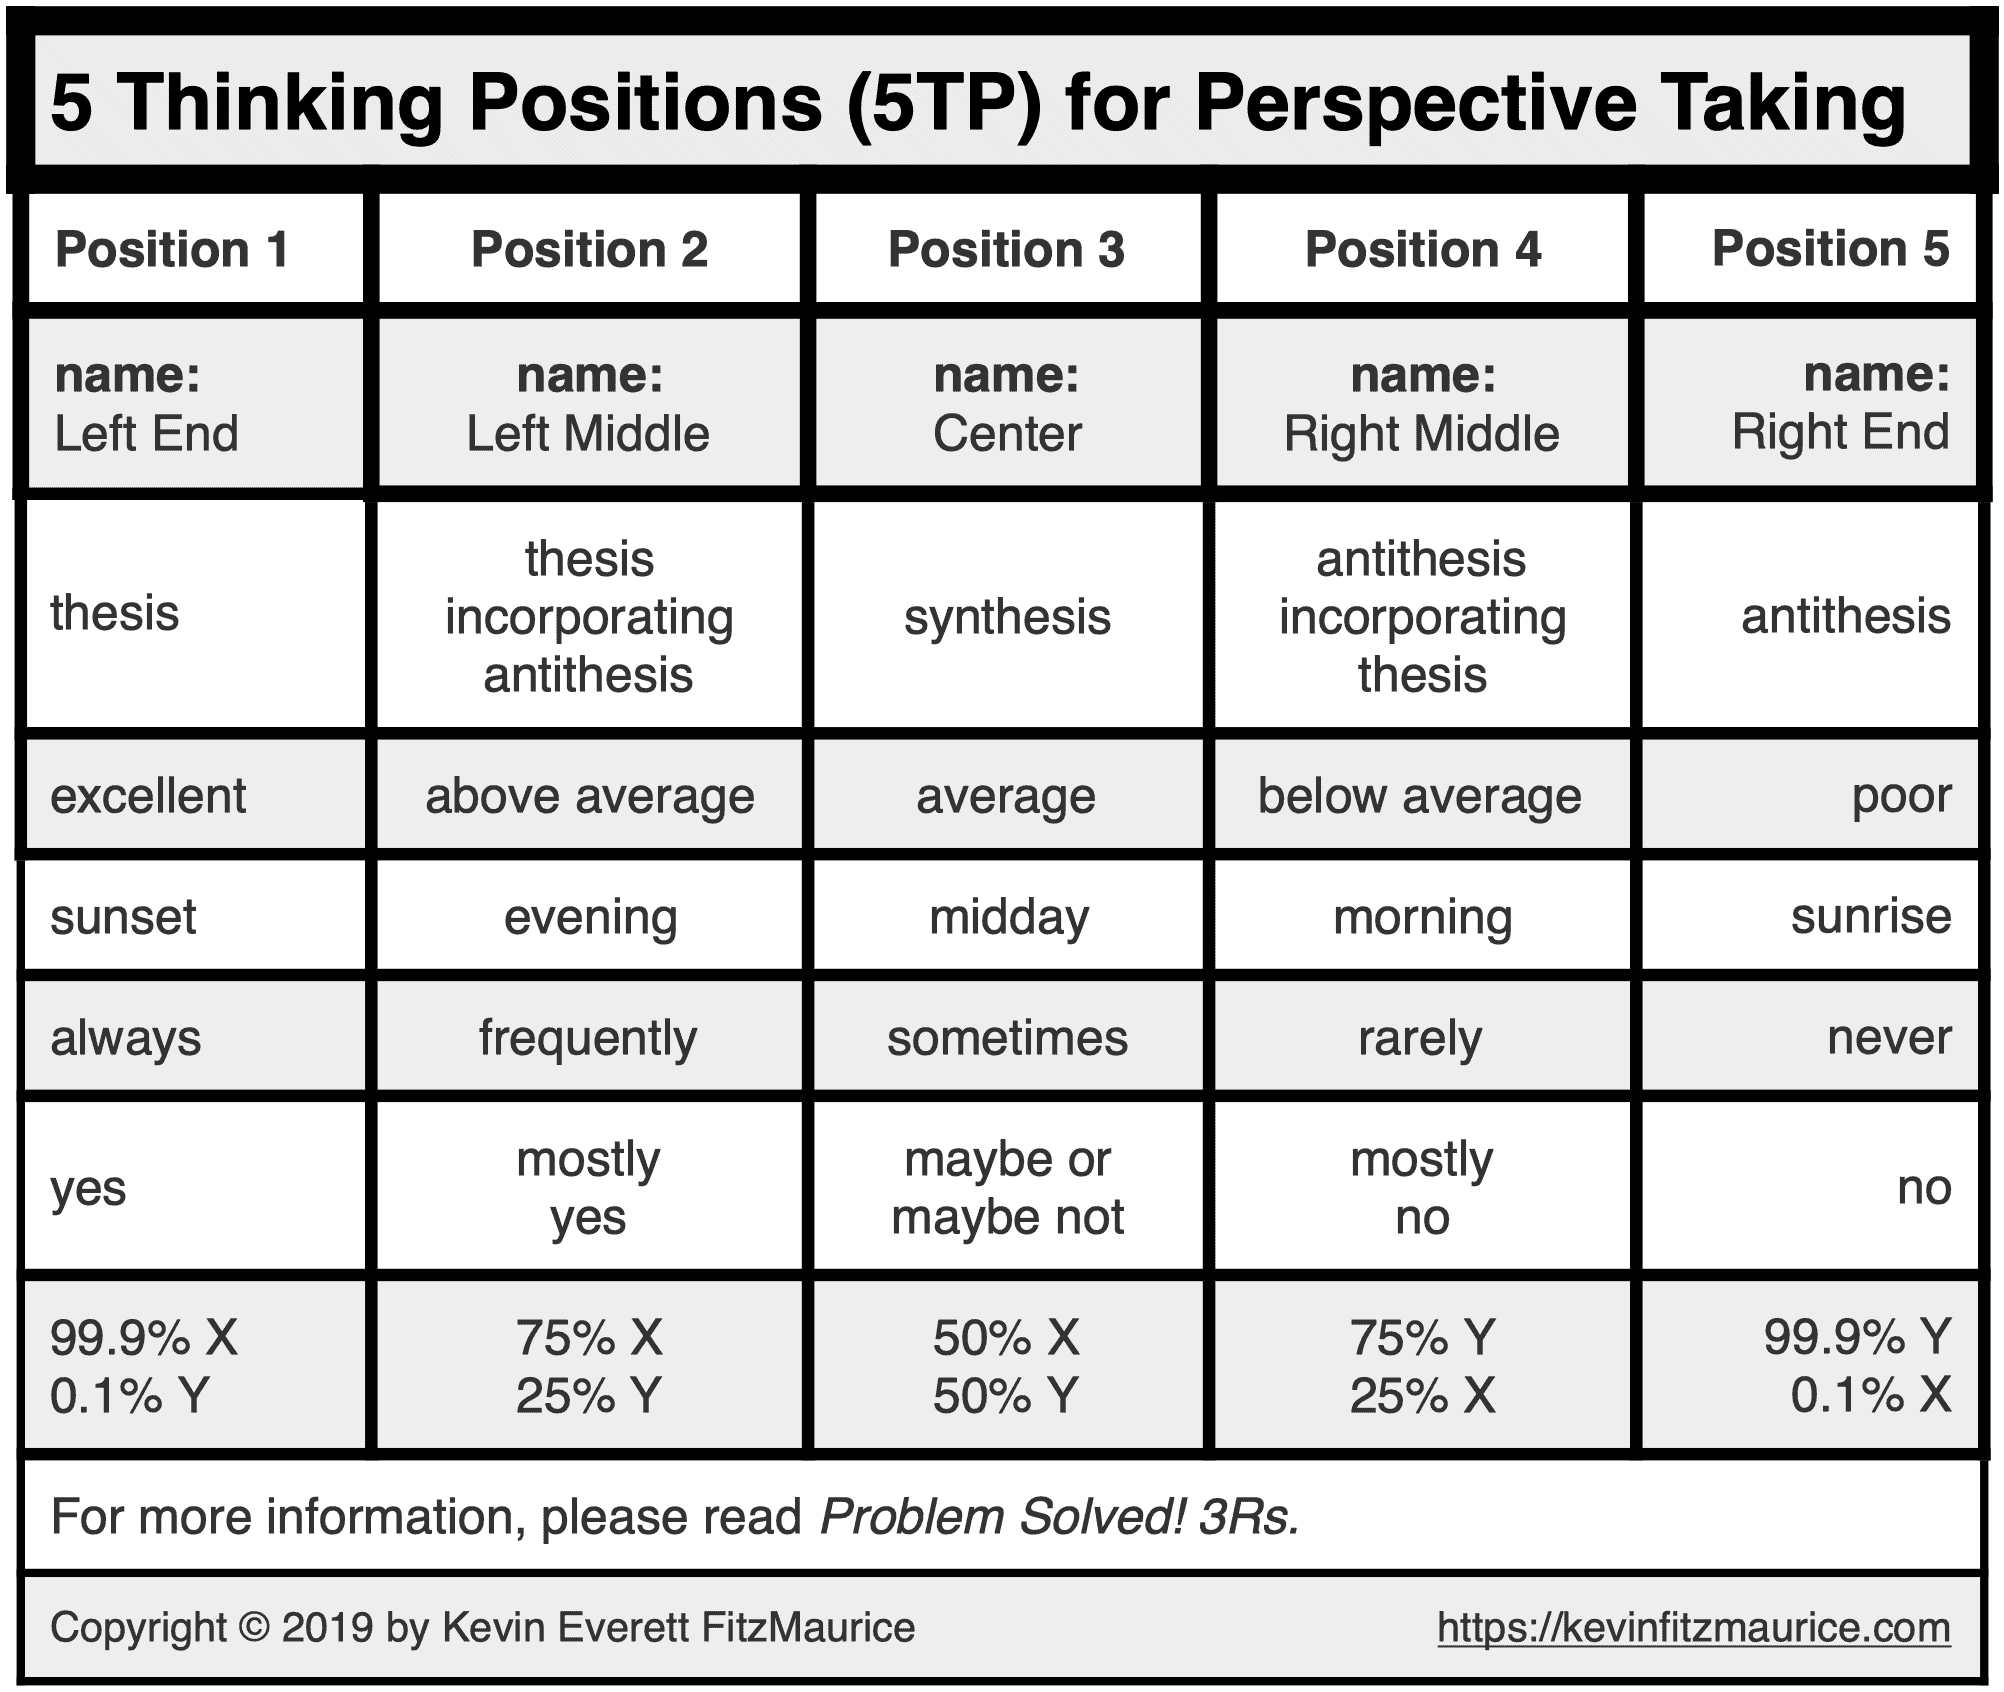 5 Thinking Positions for Perspective Taking